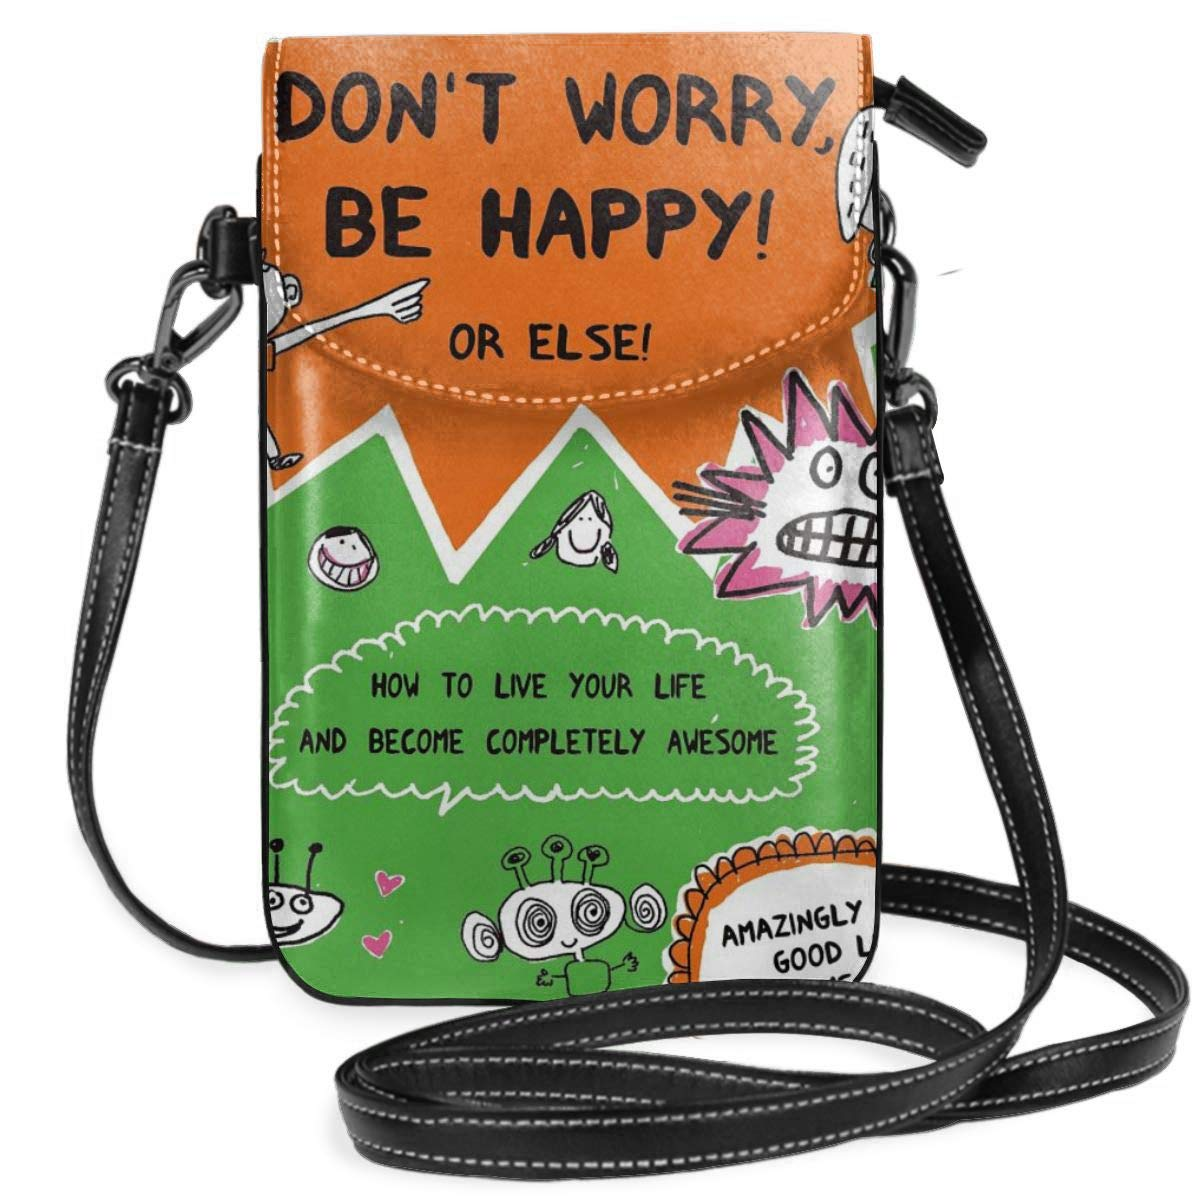 Hsanfwnzl Small Cell Phone Purse Dont Worry Be Happy Crossbody Bags with Shoulder Strap Coin Purse Wallet for Women,Girls